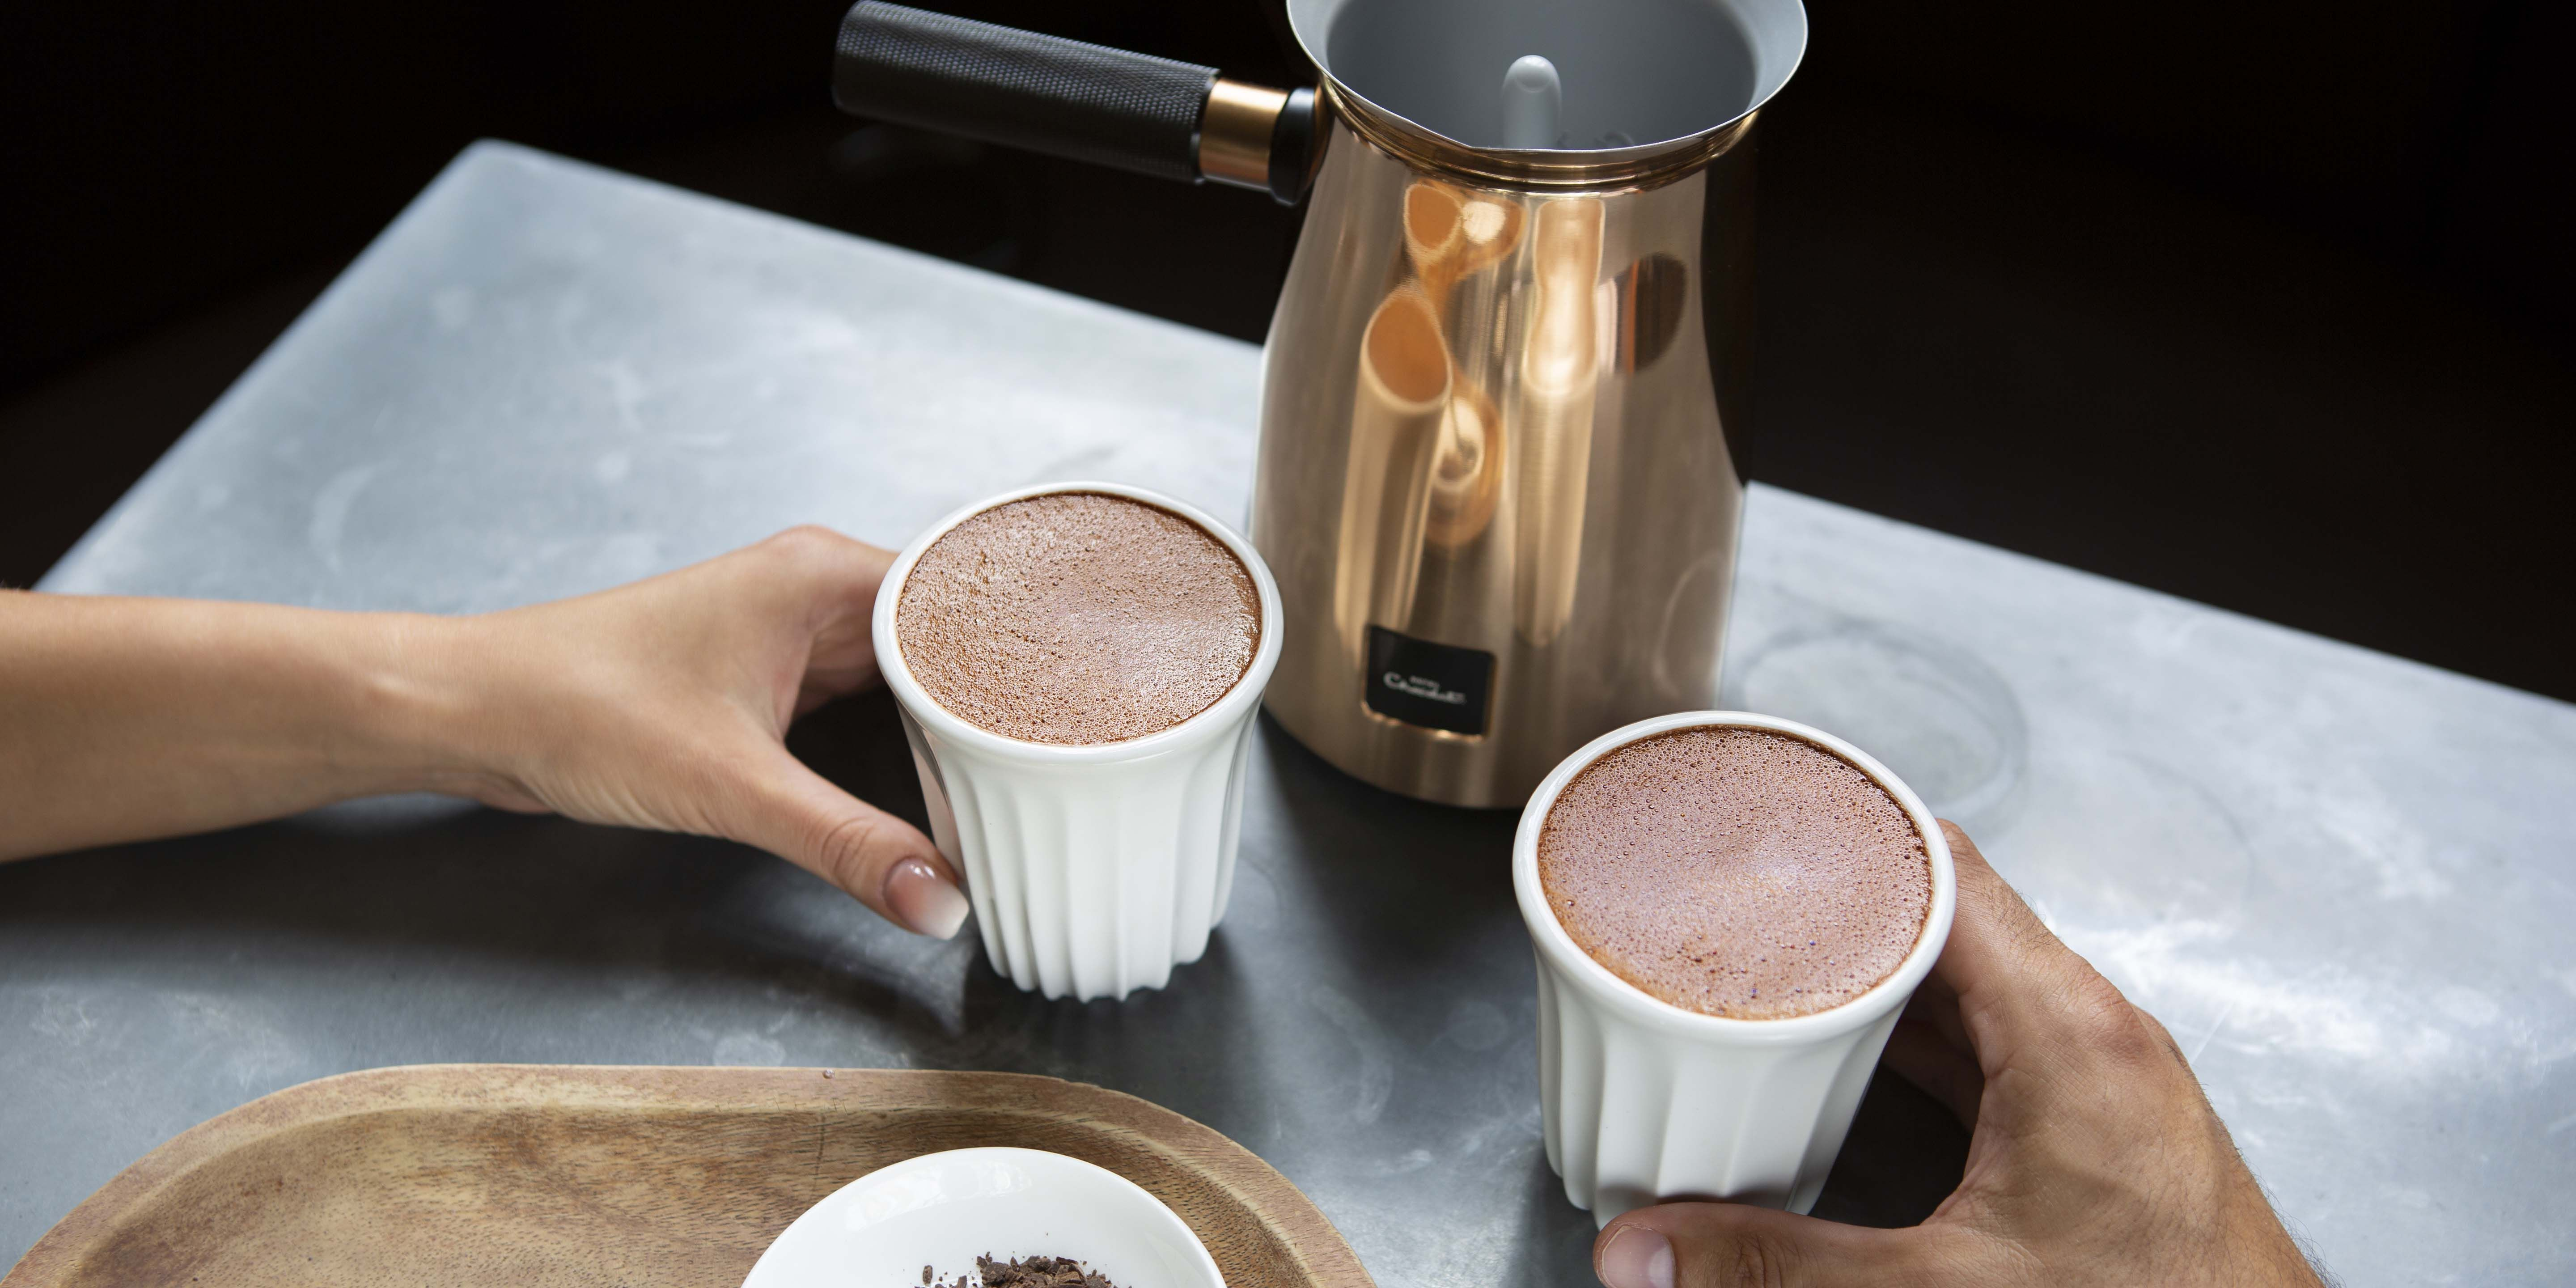 Is Hotel Chocolat's Velvetiser the perfect gift for hot chocolate lovers?